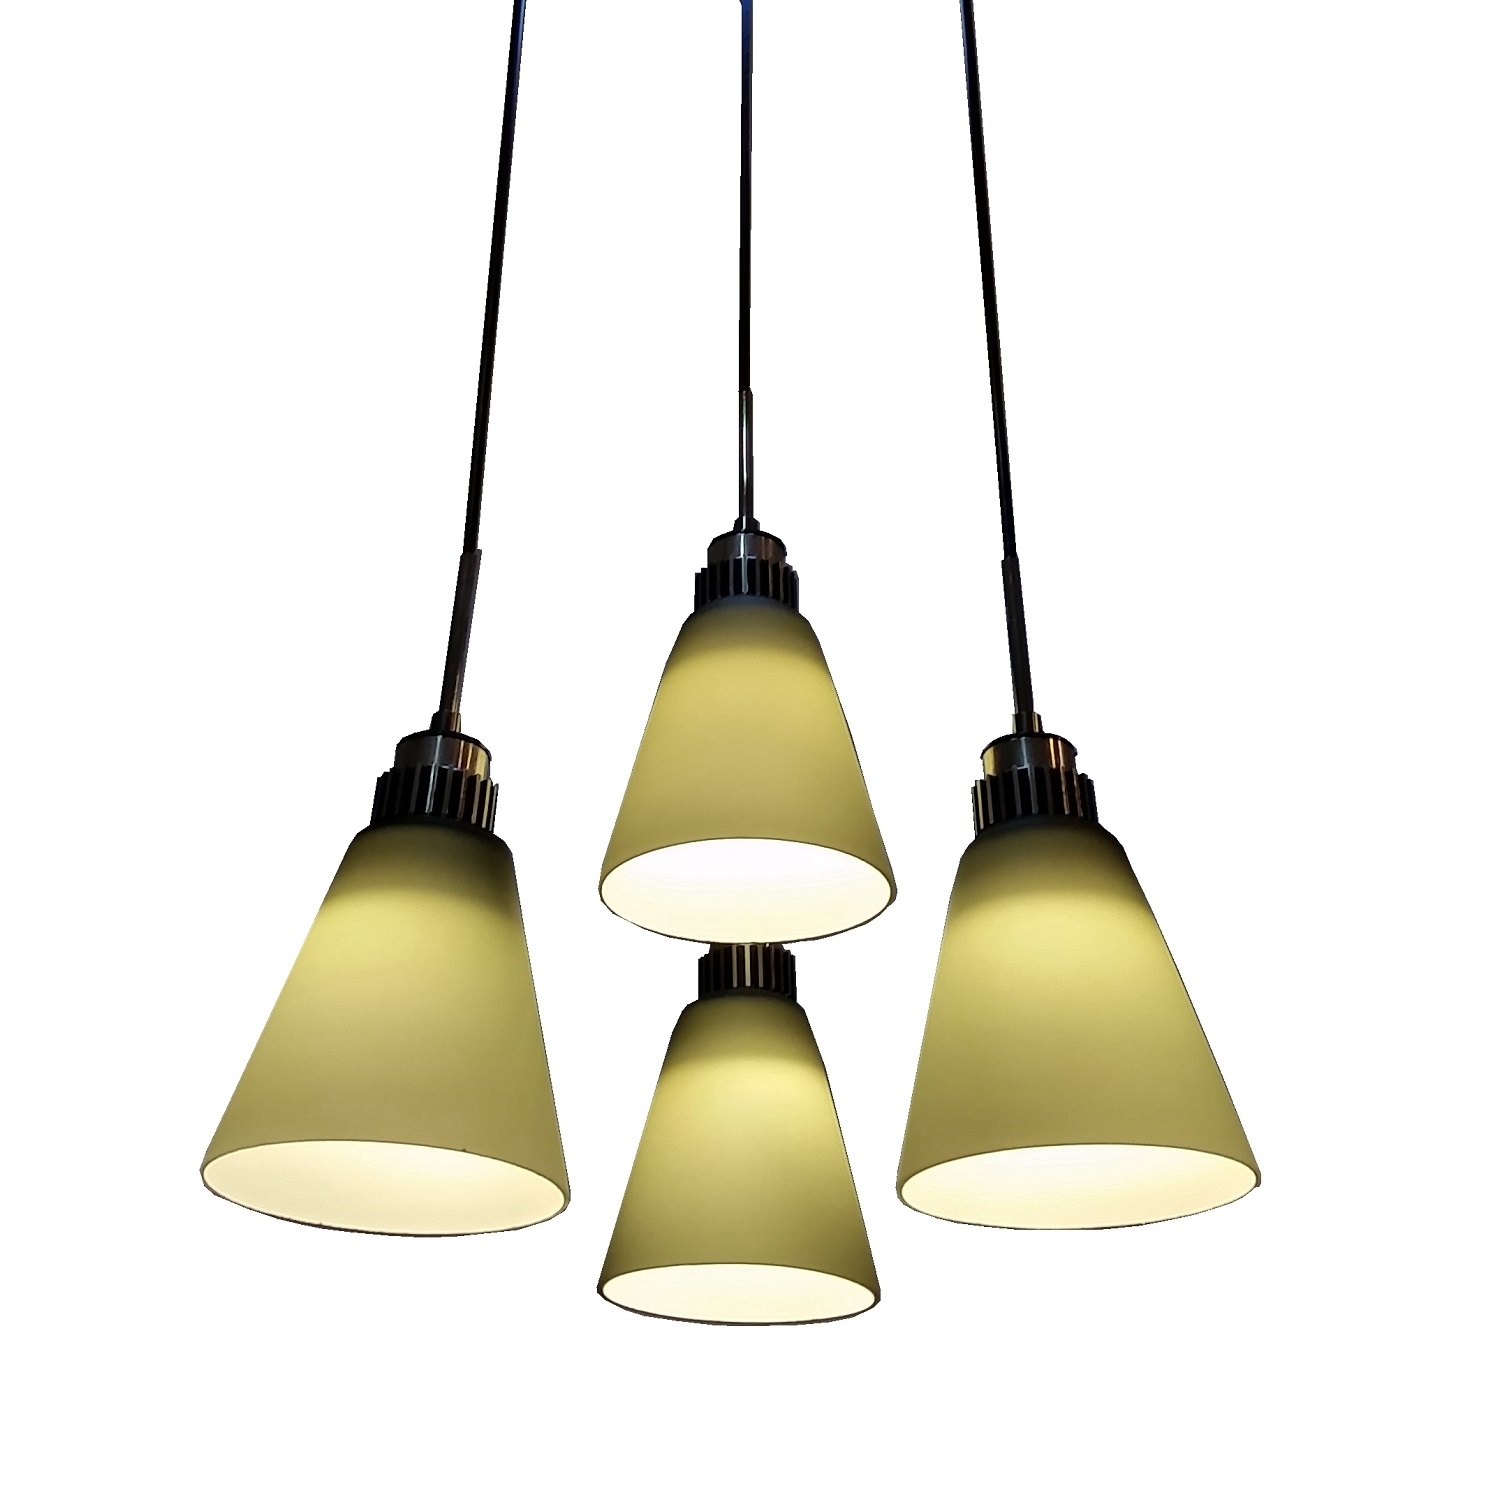 nemo dining over lights best great with fixtures kitchen tables lamps chicago nursery size also elegant diy full hanging modern new light fixture night for finding cubs chandelier glowing ideas about nashville threshold table bunch lamp lighting shades pendant of gas room contemporary